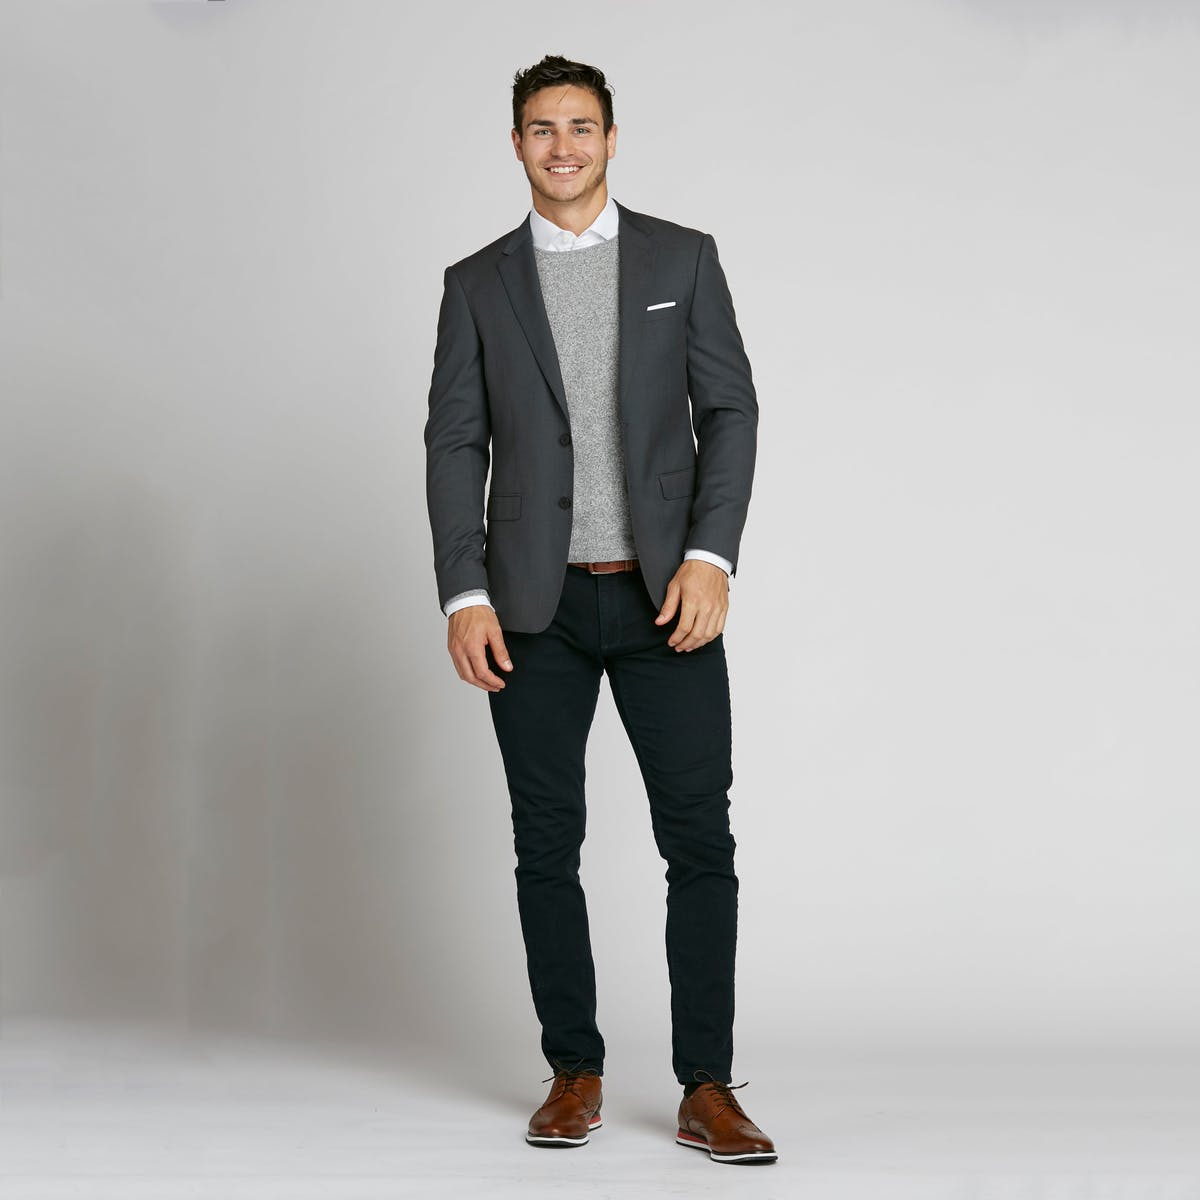 casual ways to style a suit jacket